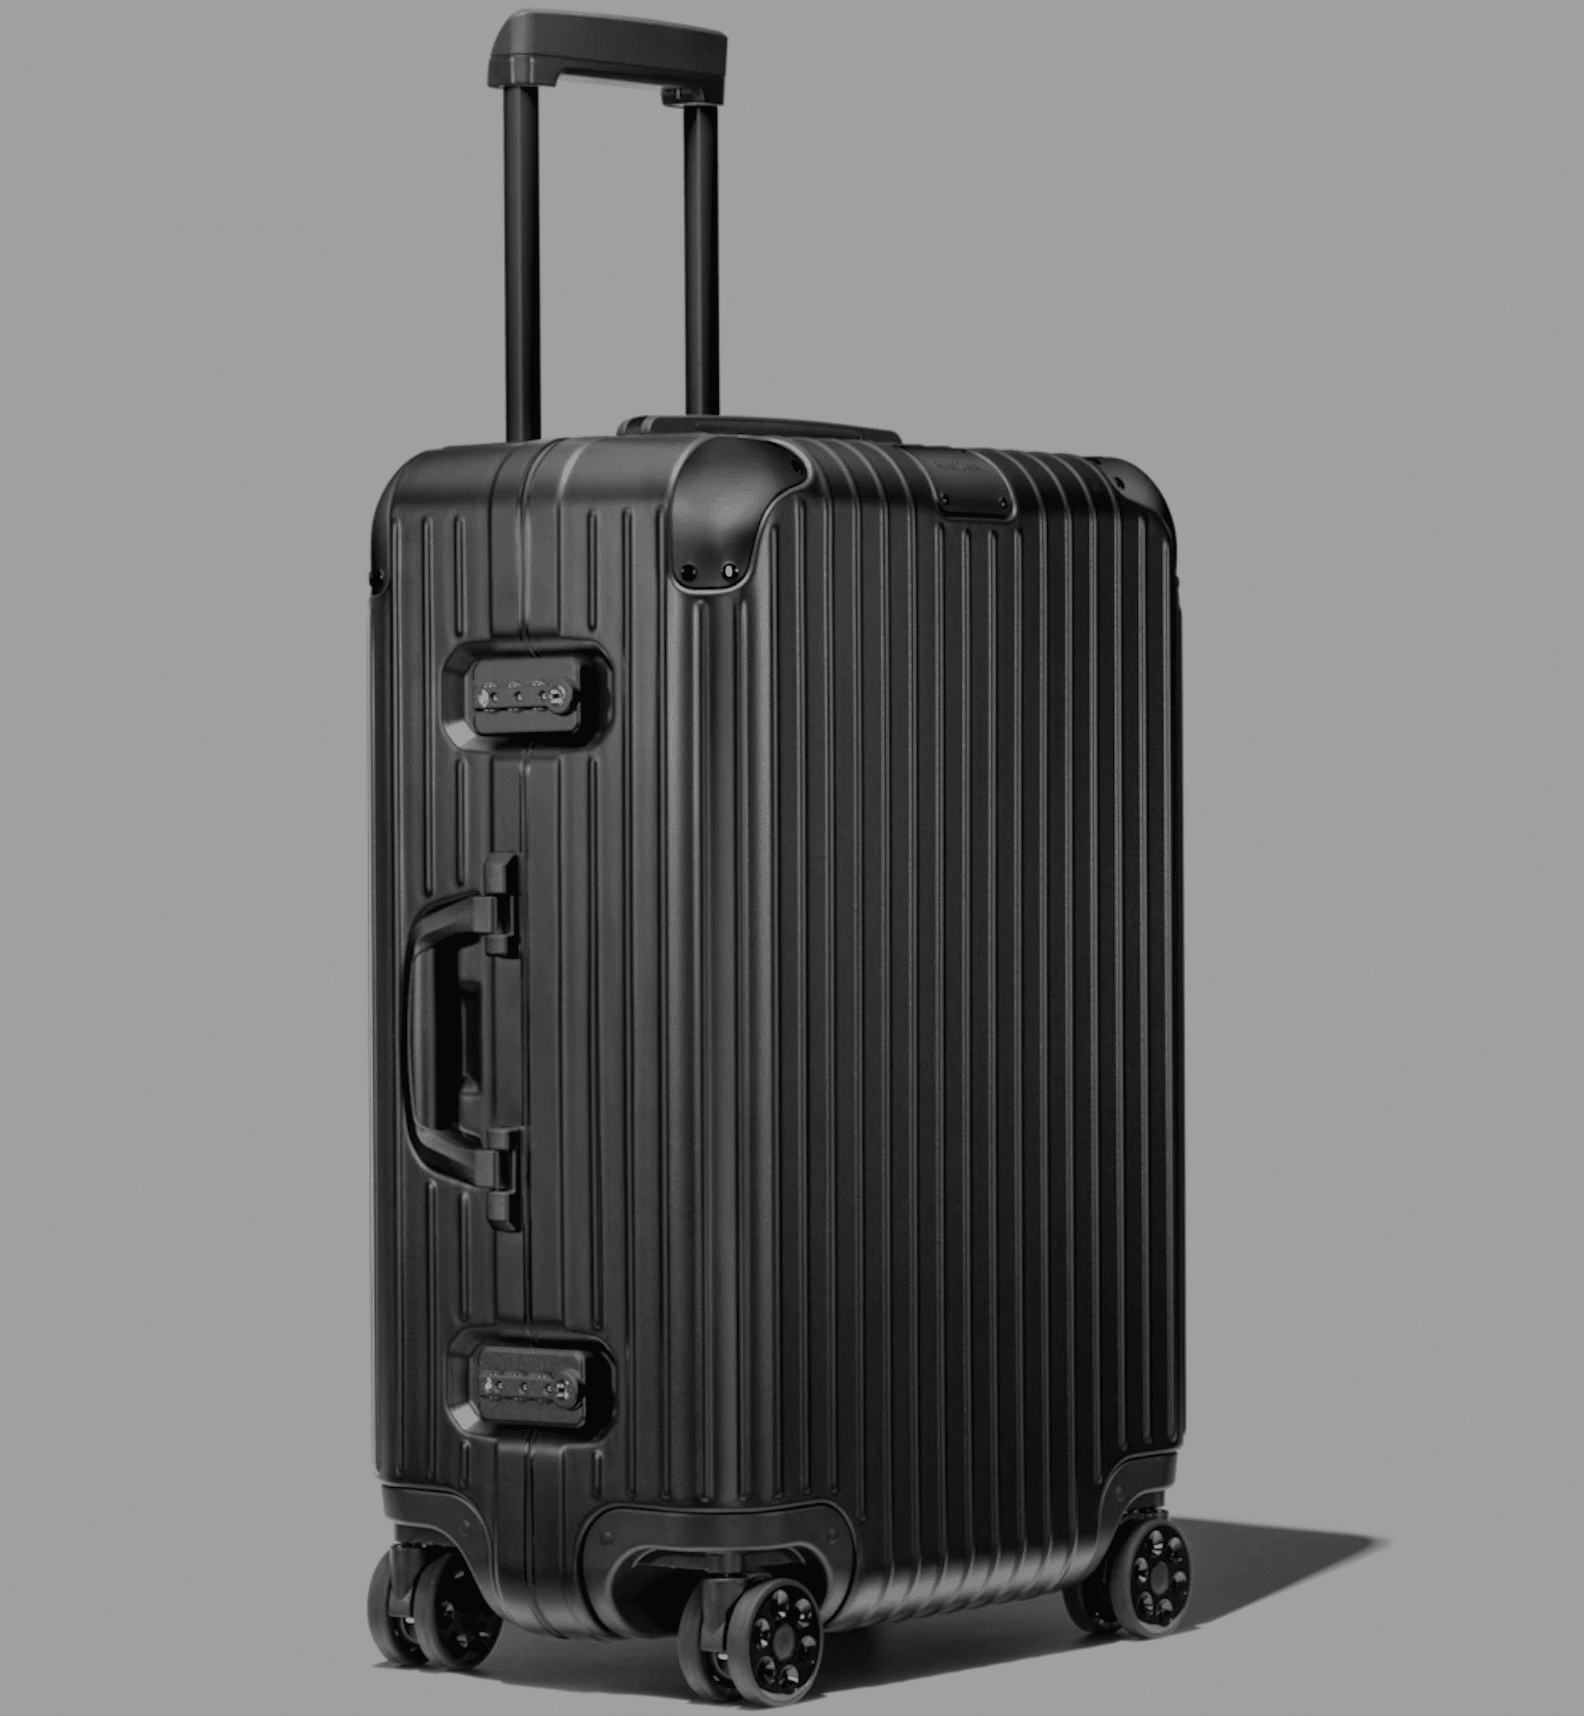 rimowa carry-on review